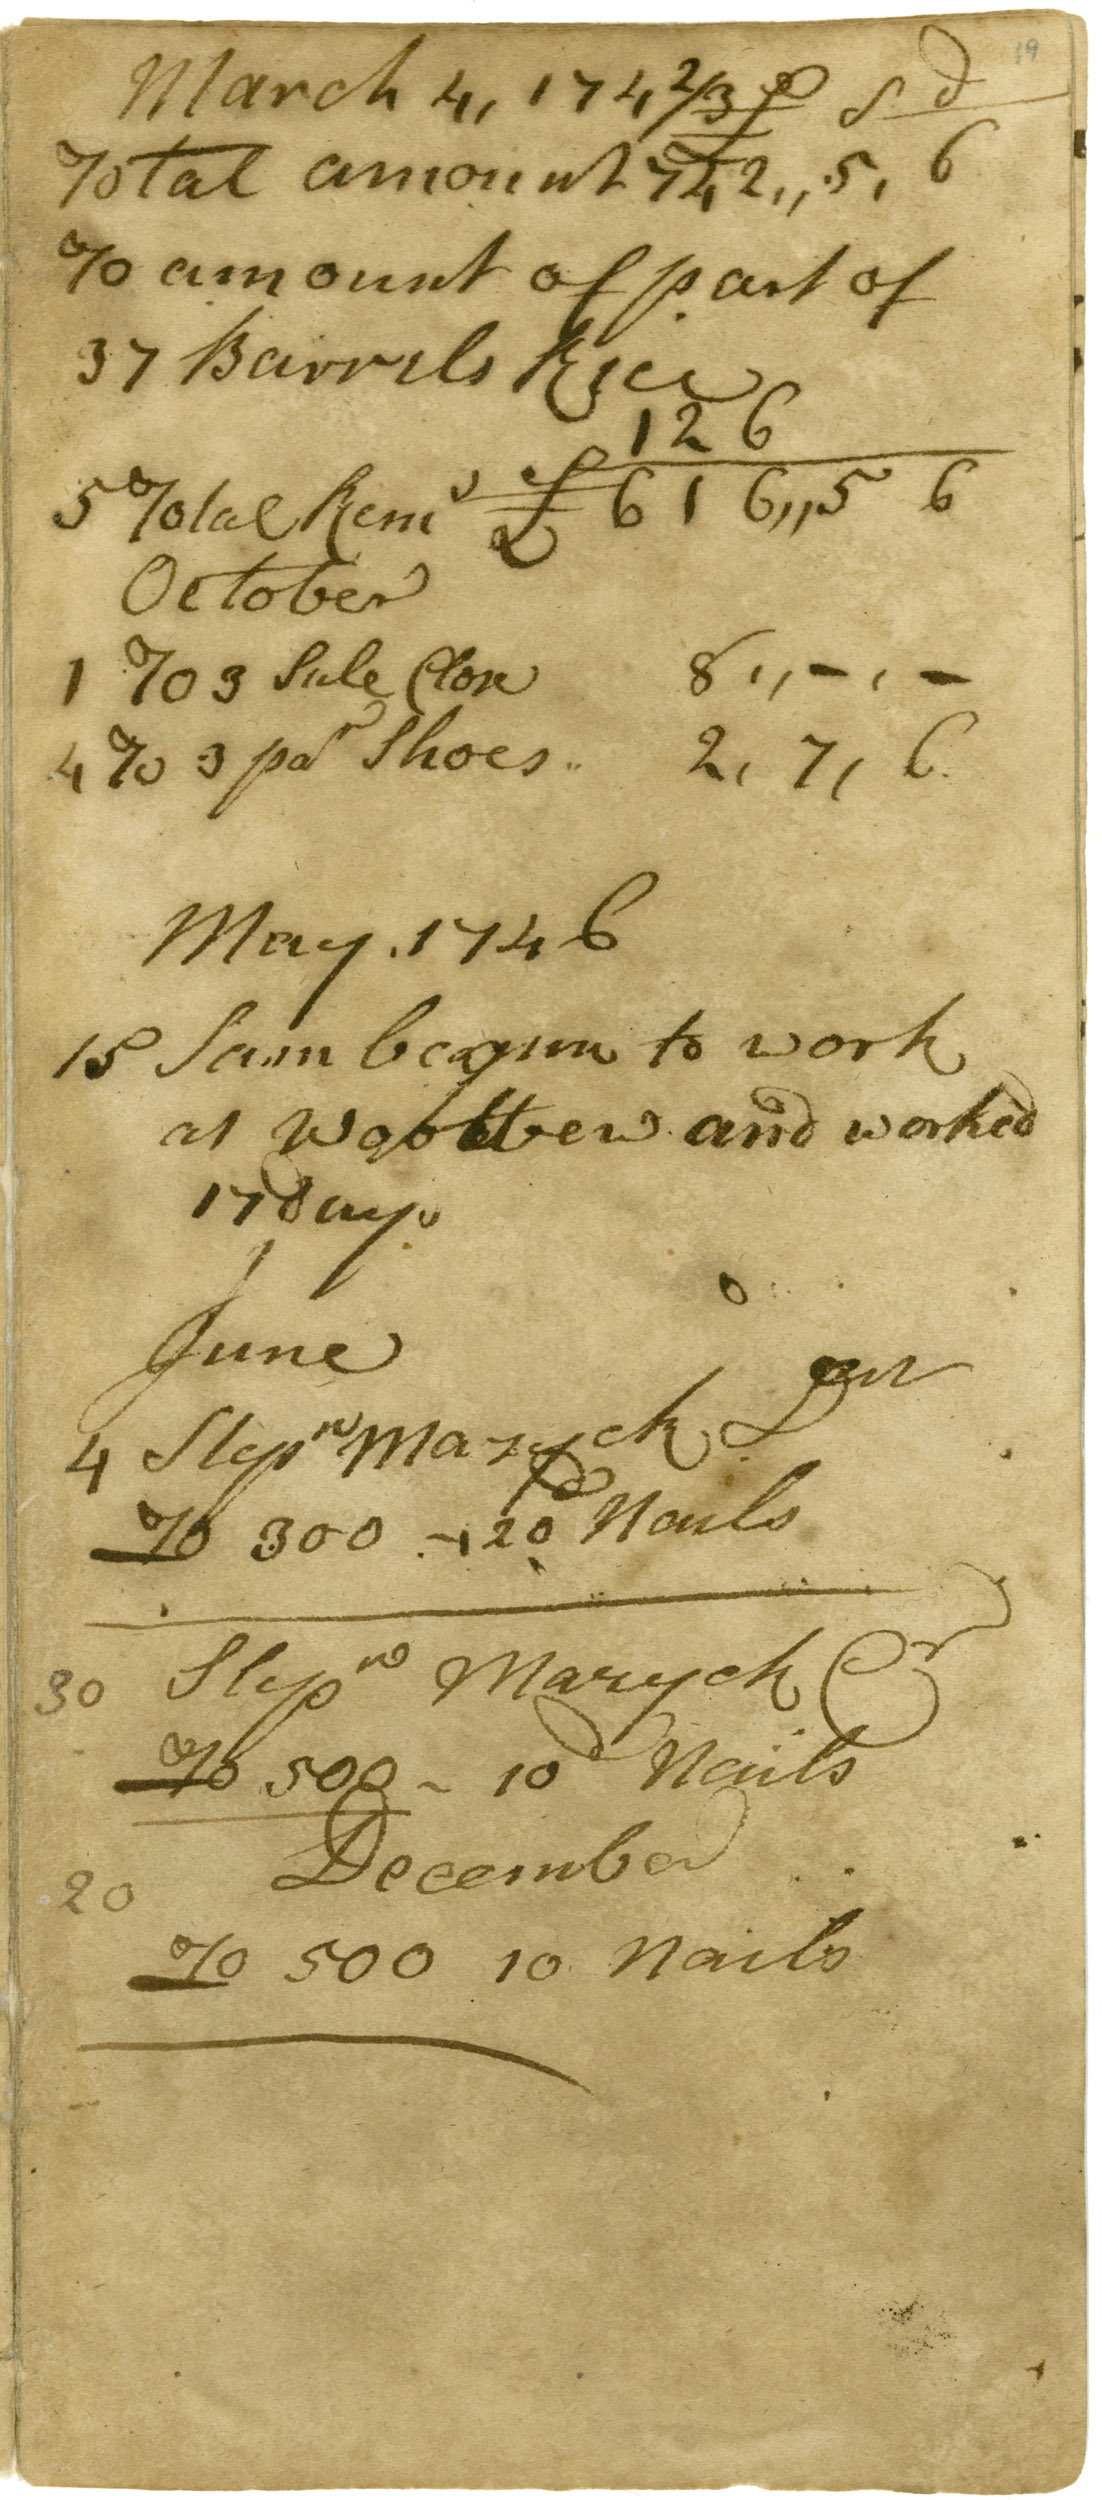 Ravenel Diary 1731-1860, page 12